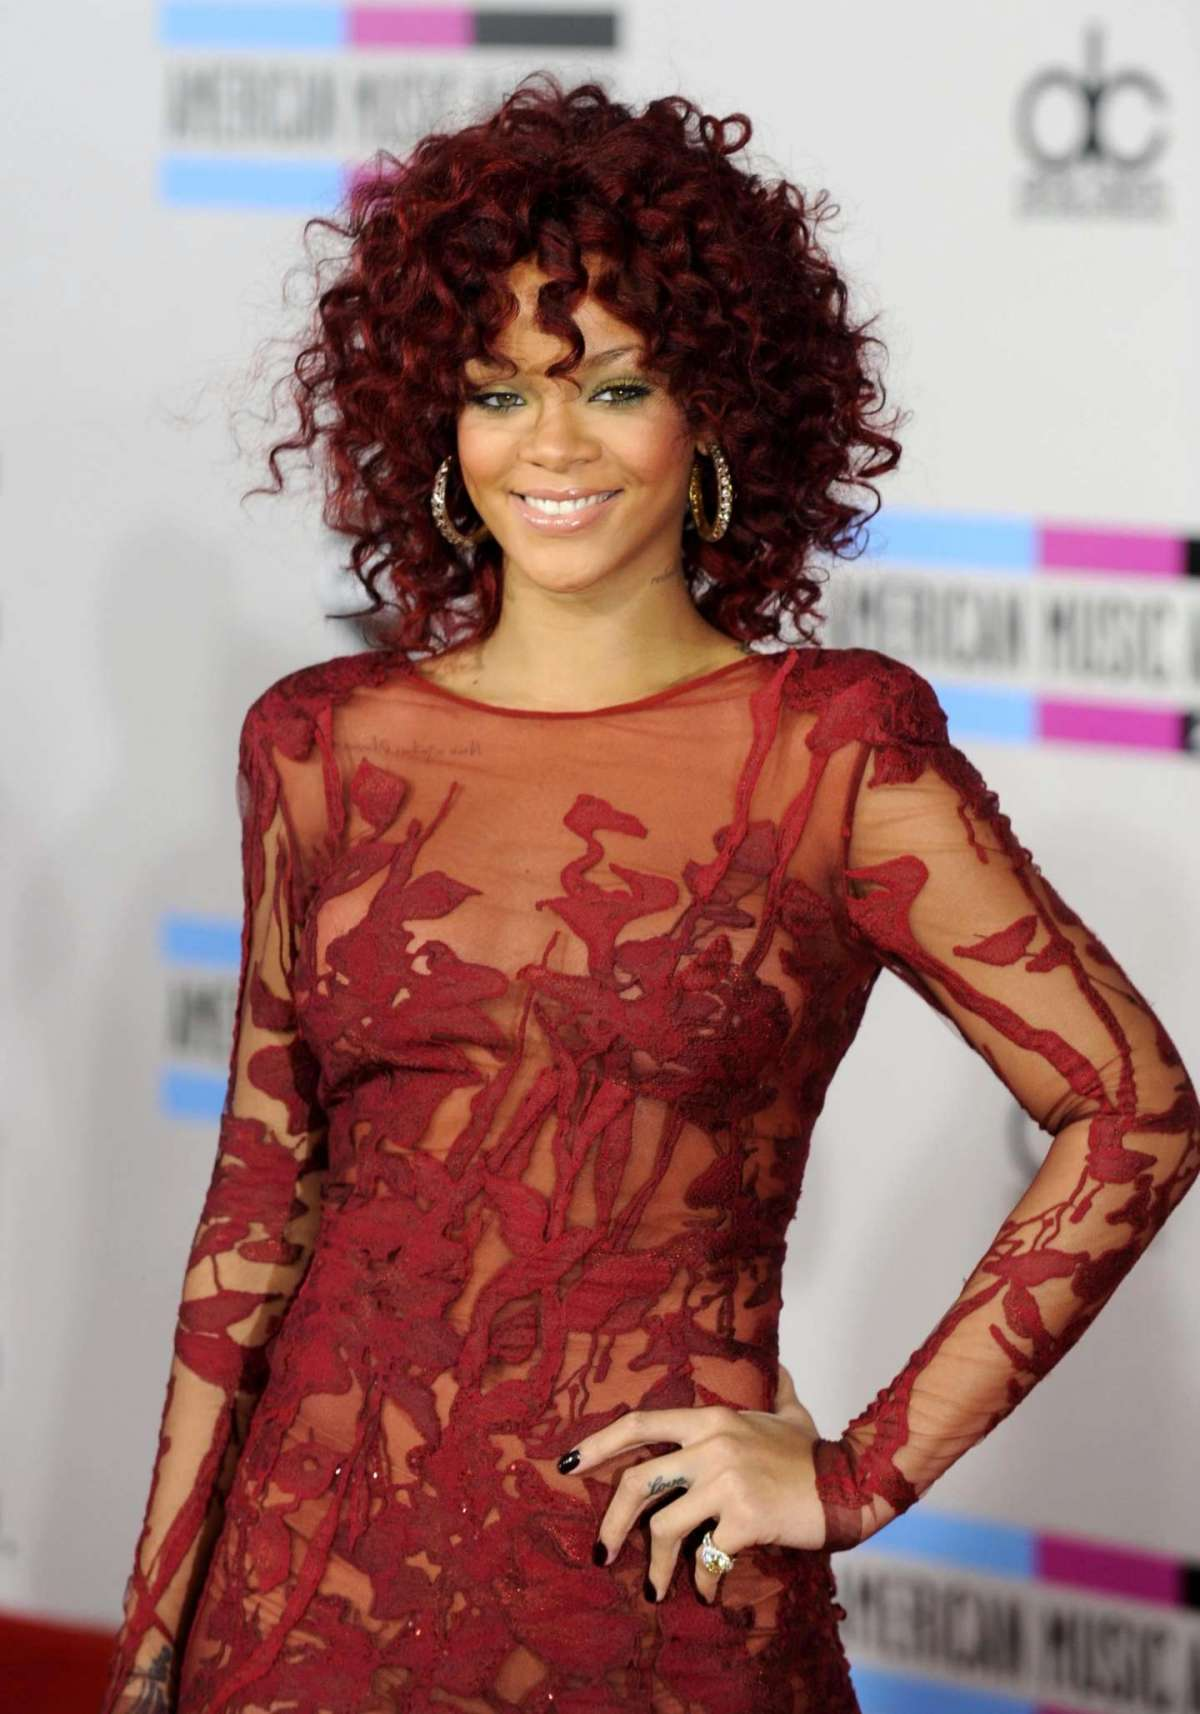 Barbadian singer Rihanna arrives for the 38th Annual American Music Awards in Los Angeles, California, USA, 21 November 2010